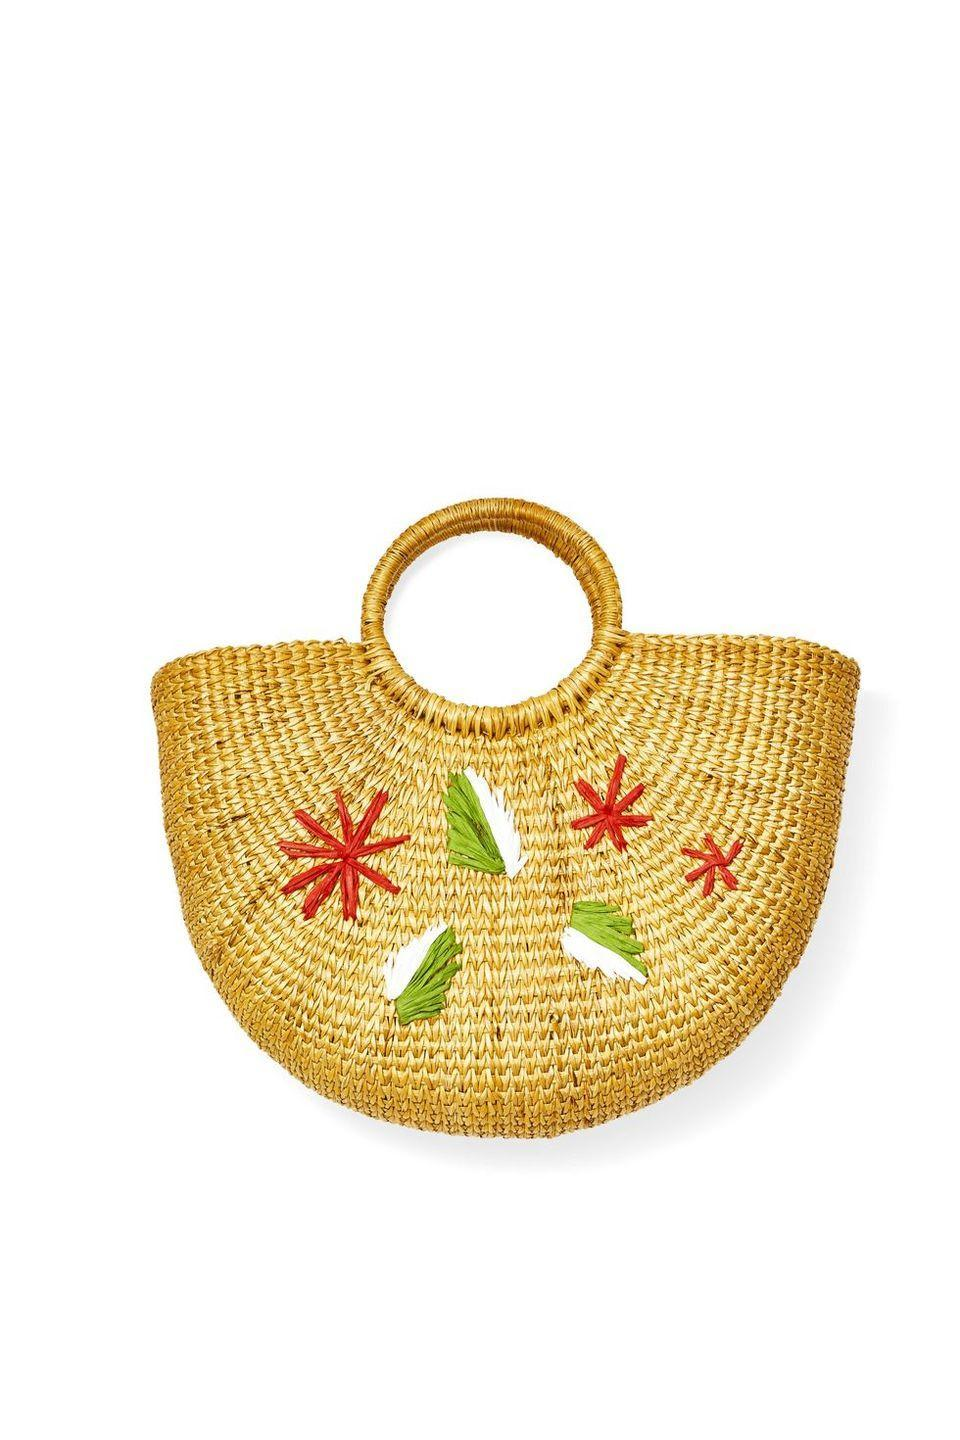 """<p>If your mom is a purse-lover, customize a summery raffia bag with this fun craft. </p><p><strong><em><a href=""""https://www.womansday.com/life/g2913/easy-spring-crafts/?slide=2"""" rel=""""nofollow noopener"""" target=""""_blank"""" data-ylk=""""slk:Get the Raffia Bag tutorial"""" class=""""link rapid-noclick-resp"""">Get the Raffia Bag tutorial</a>. </em></strong> </p>"""